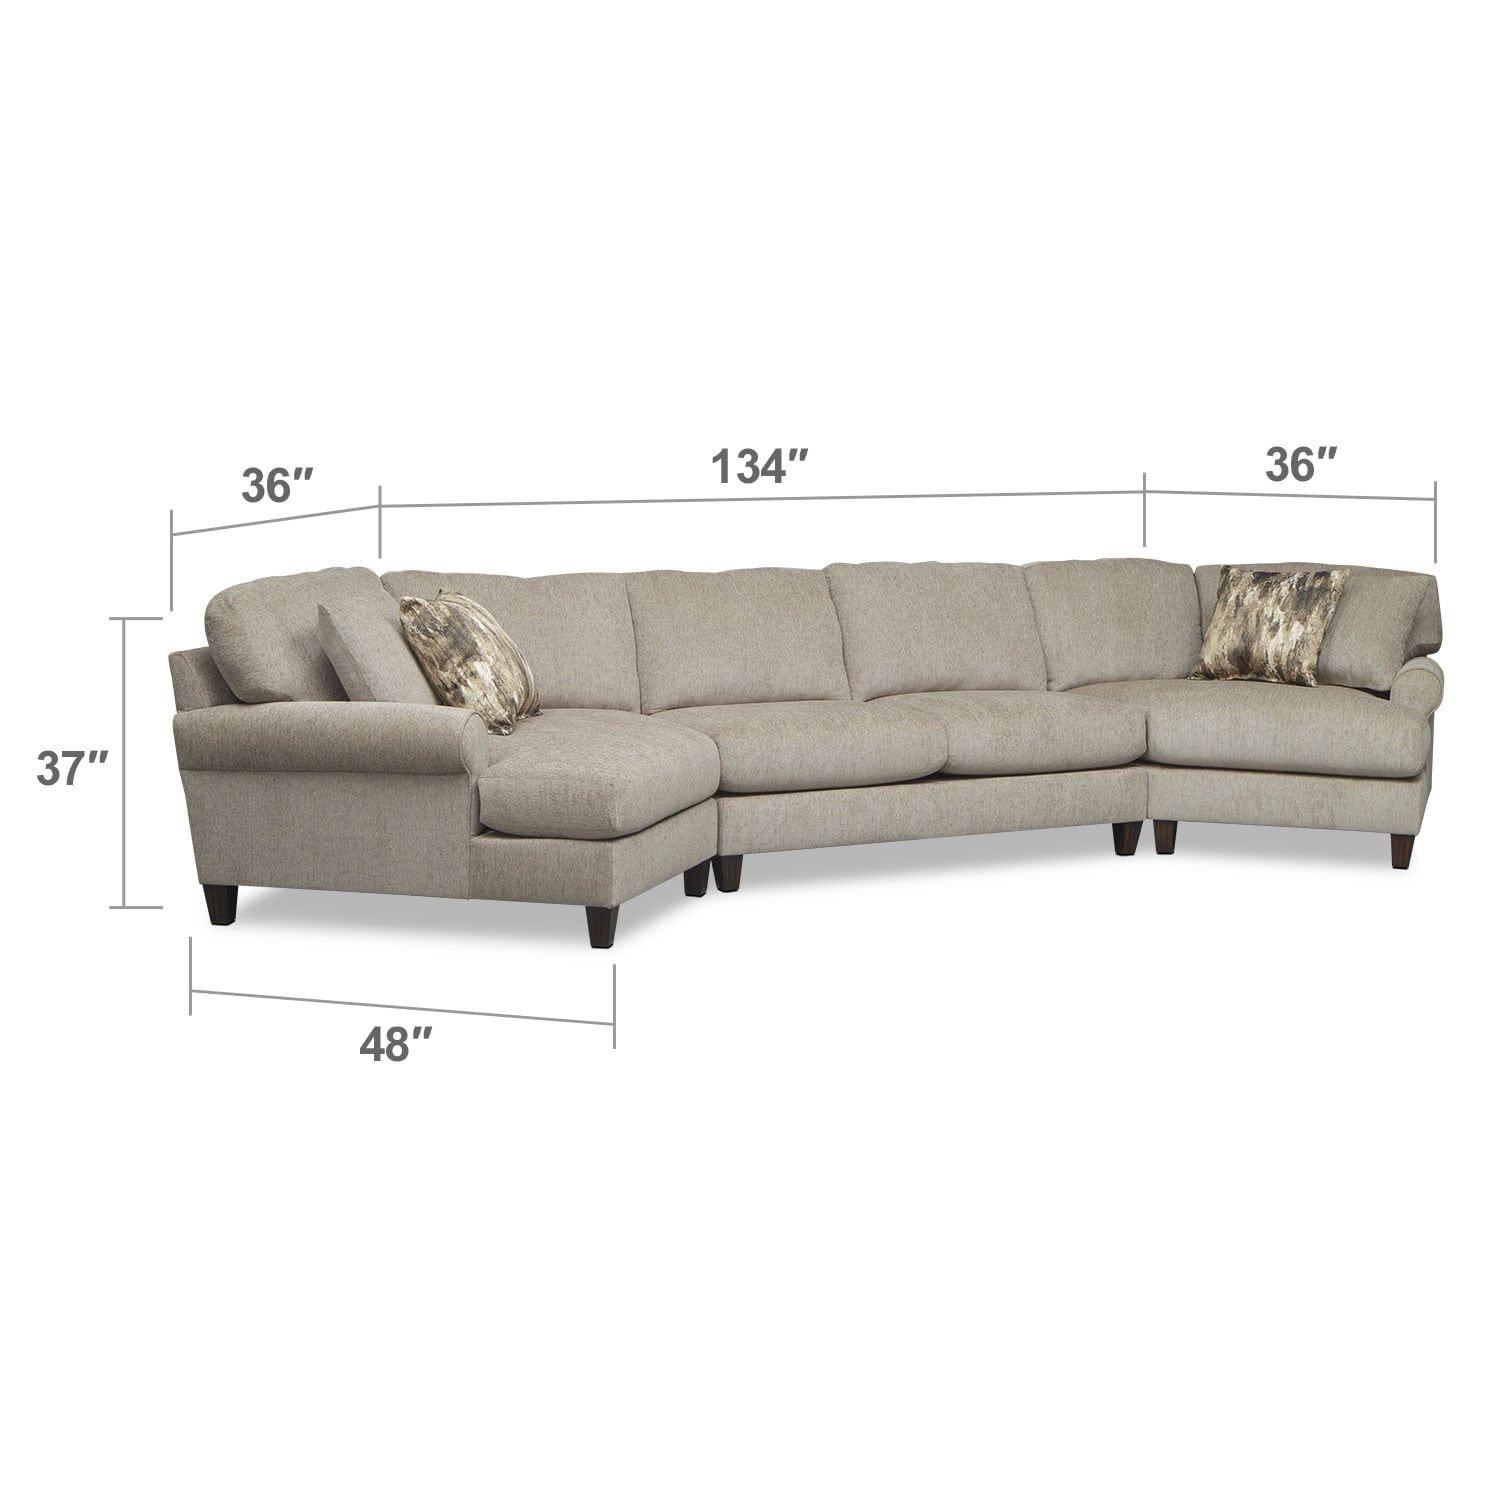 Living Room Furniture - Karma 3-Piece Sectional with 2 Cuddlers - Mink